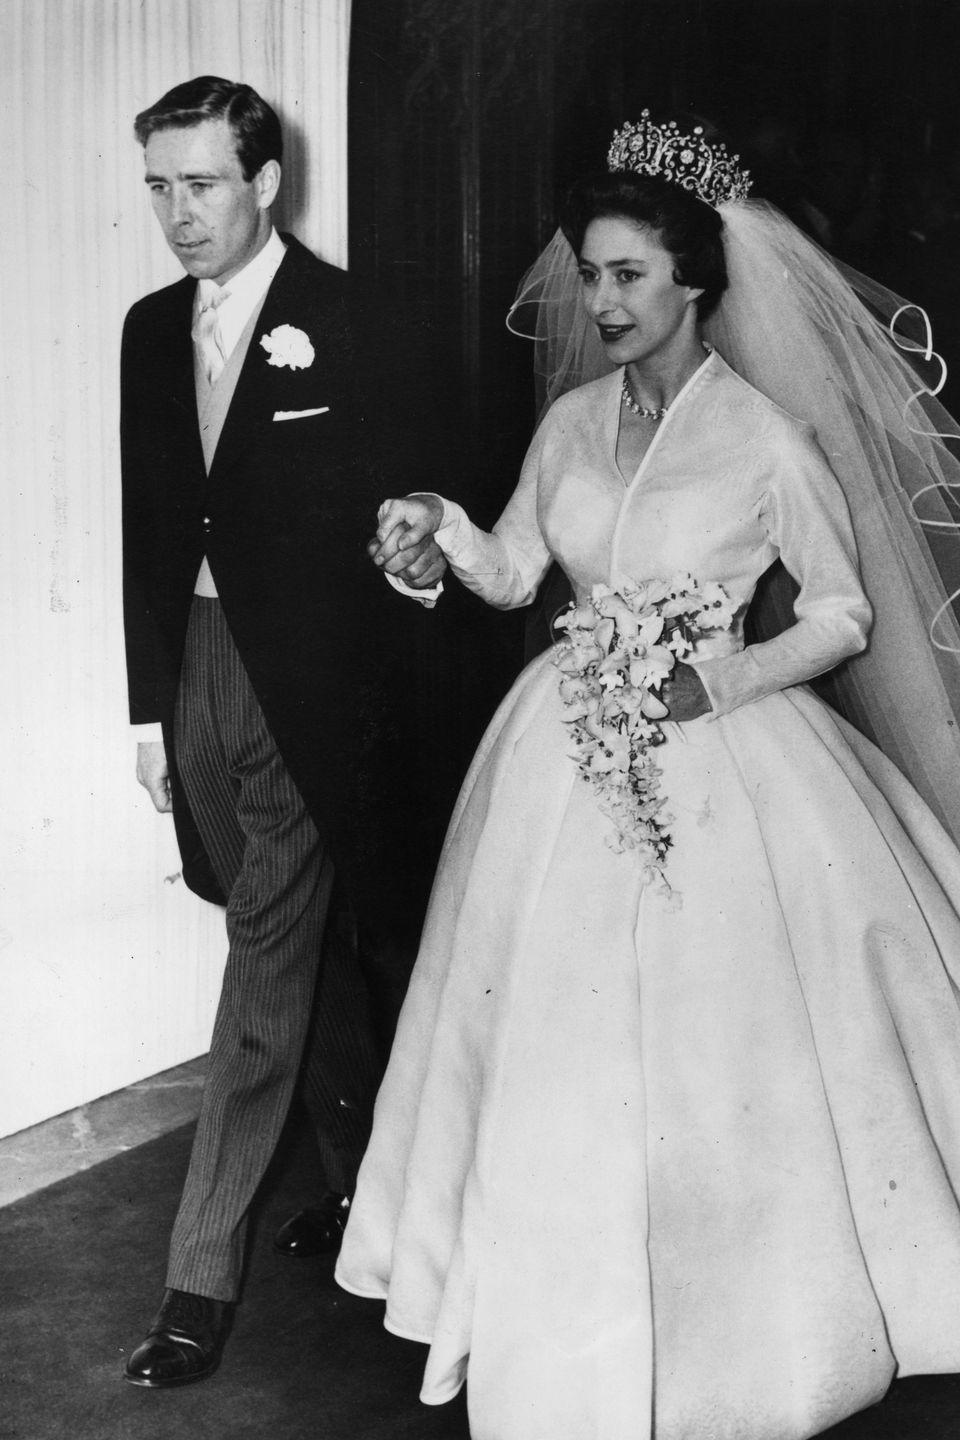 <p>Princess Margaret met photographer Antony Armstrong-Jones in 1958 at a dinner party, and the two began a secret love affair after he was commissioned to photograph her a few months after their first meeting. The two were married on May 6, 1960 at Westminster Abbey, despite the controversy around his not being of royal or aristocratic status.</p>